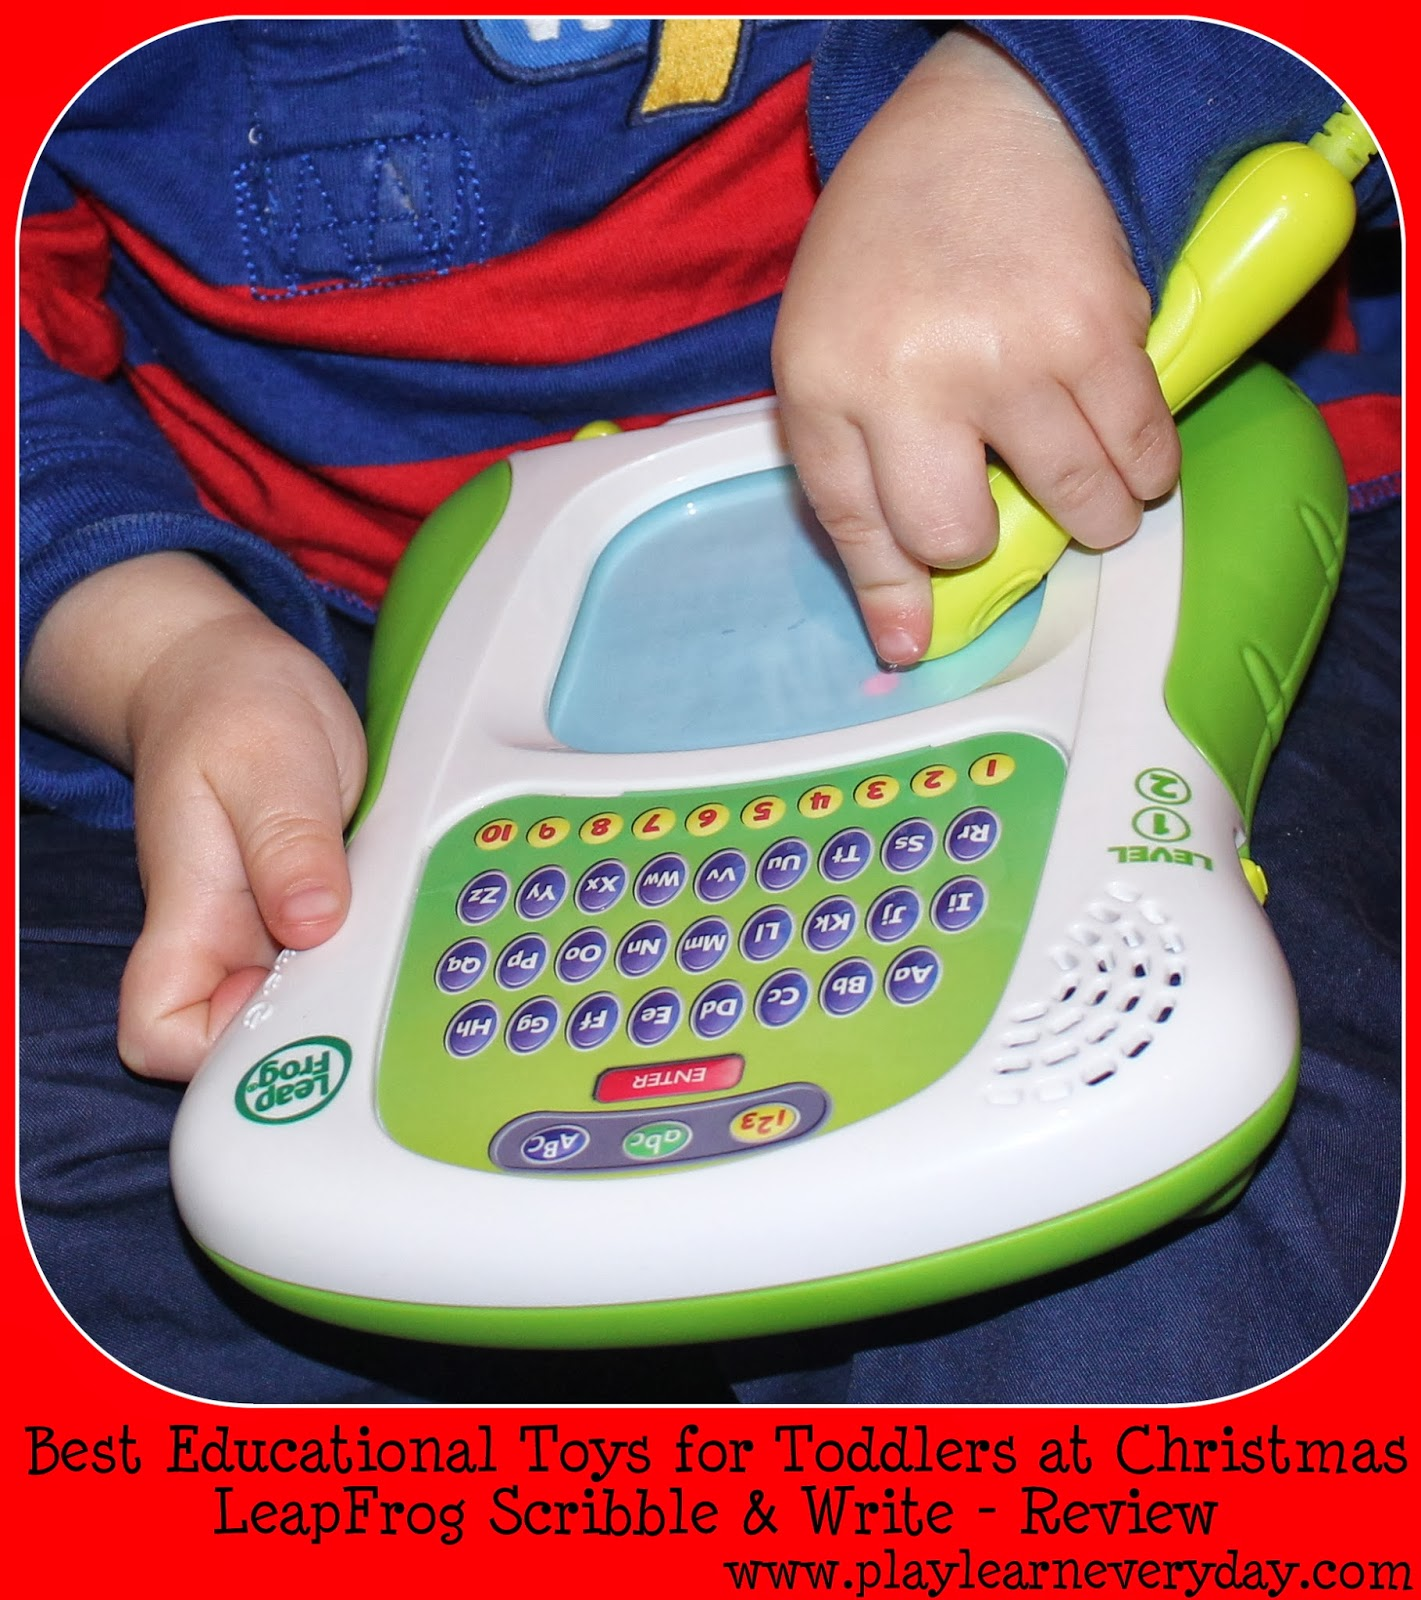 Best Learning Toys For Toddlers : Leapfrog scribble write educational christmas toy